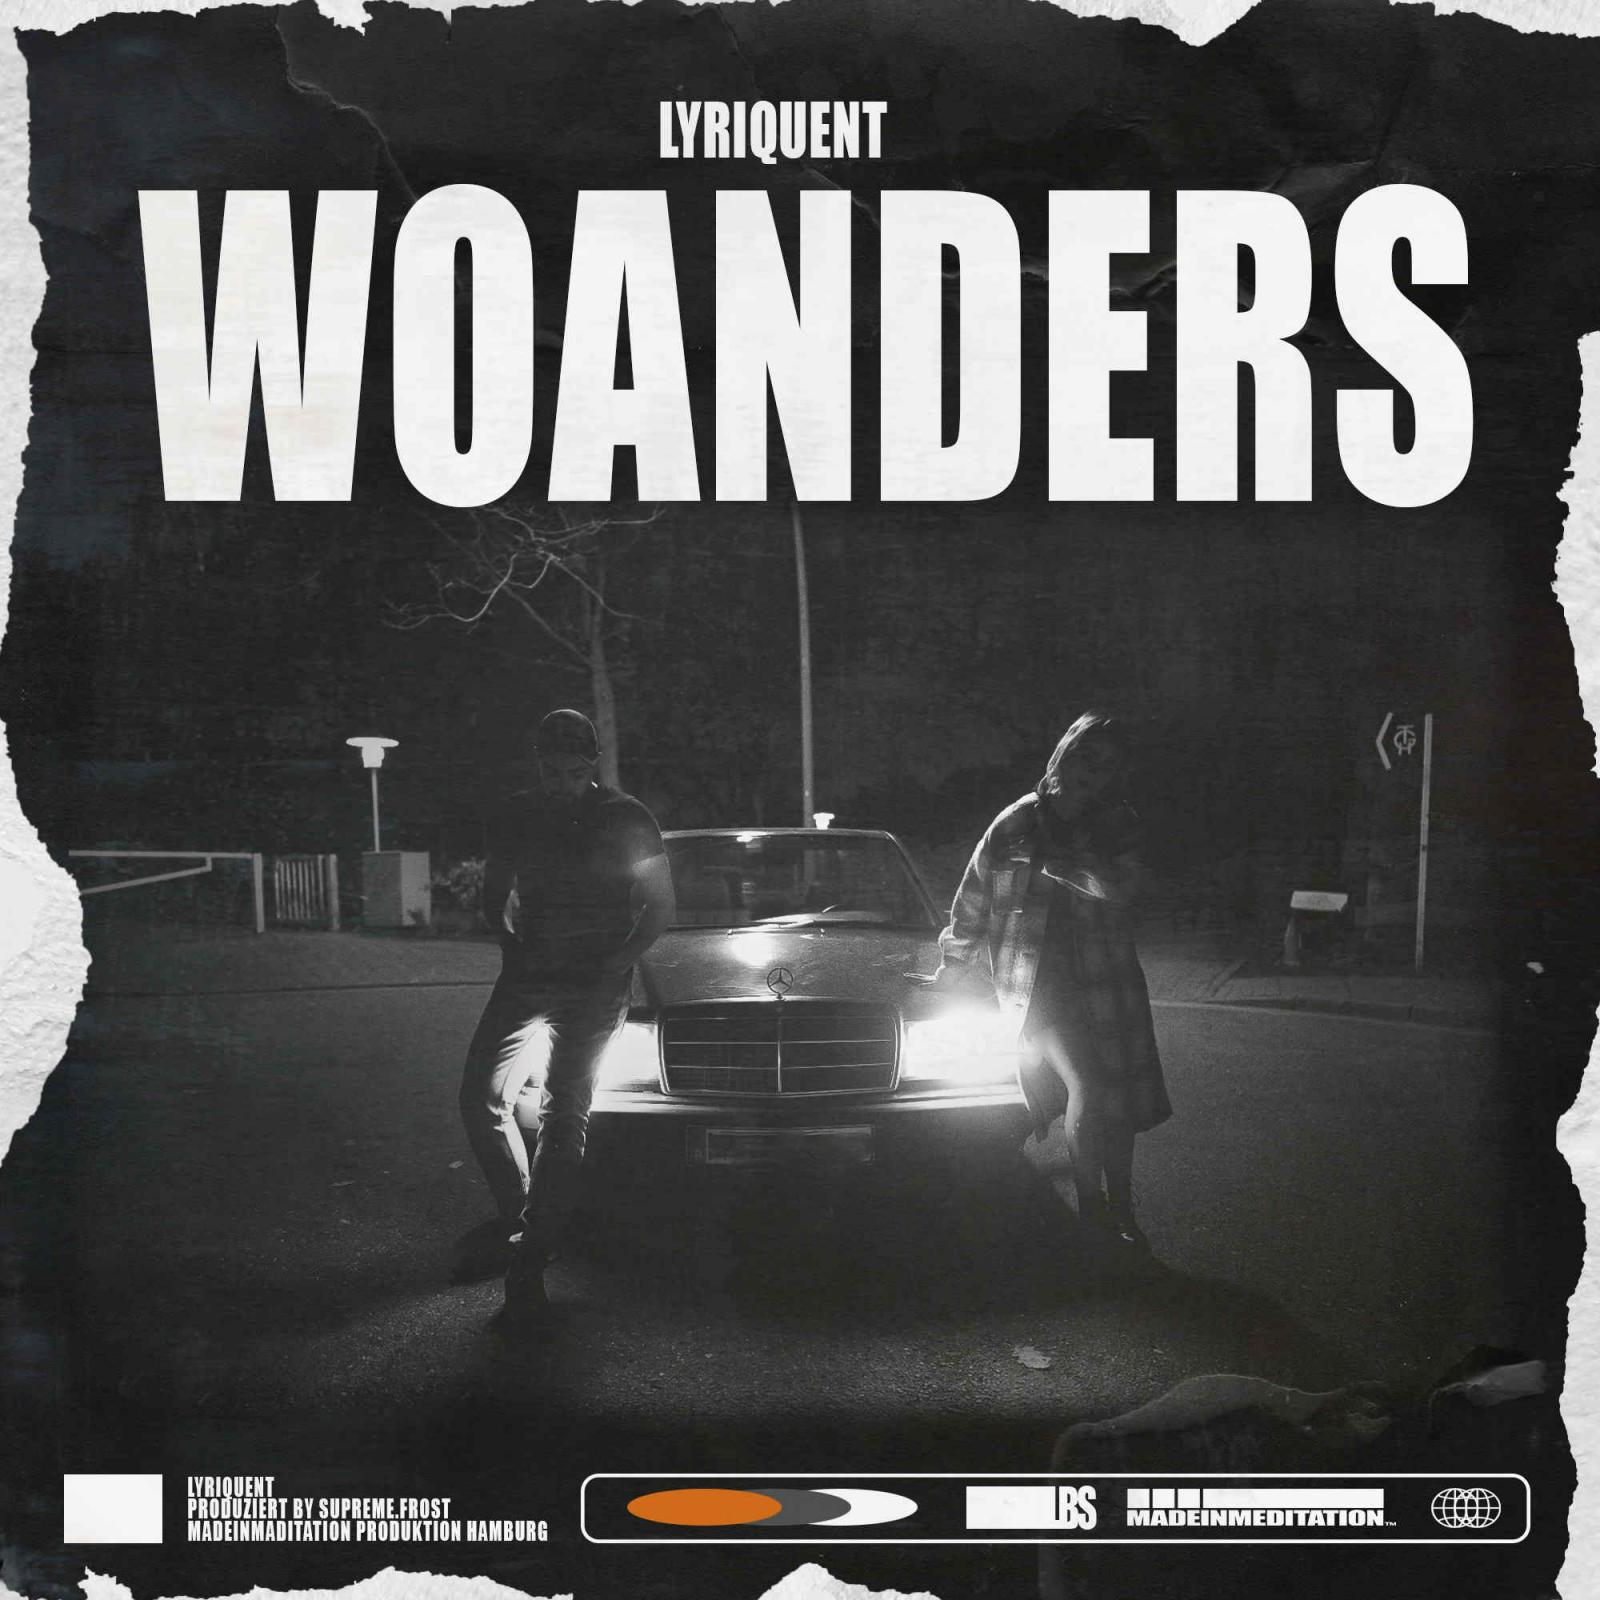 Upcoming: Lyriquent - Woanders